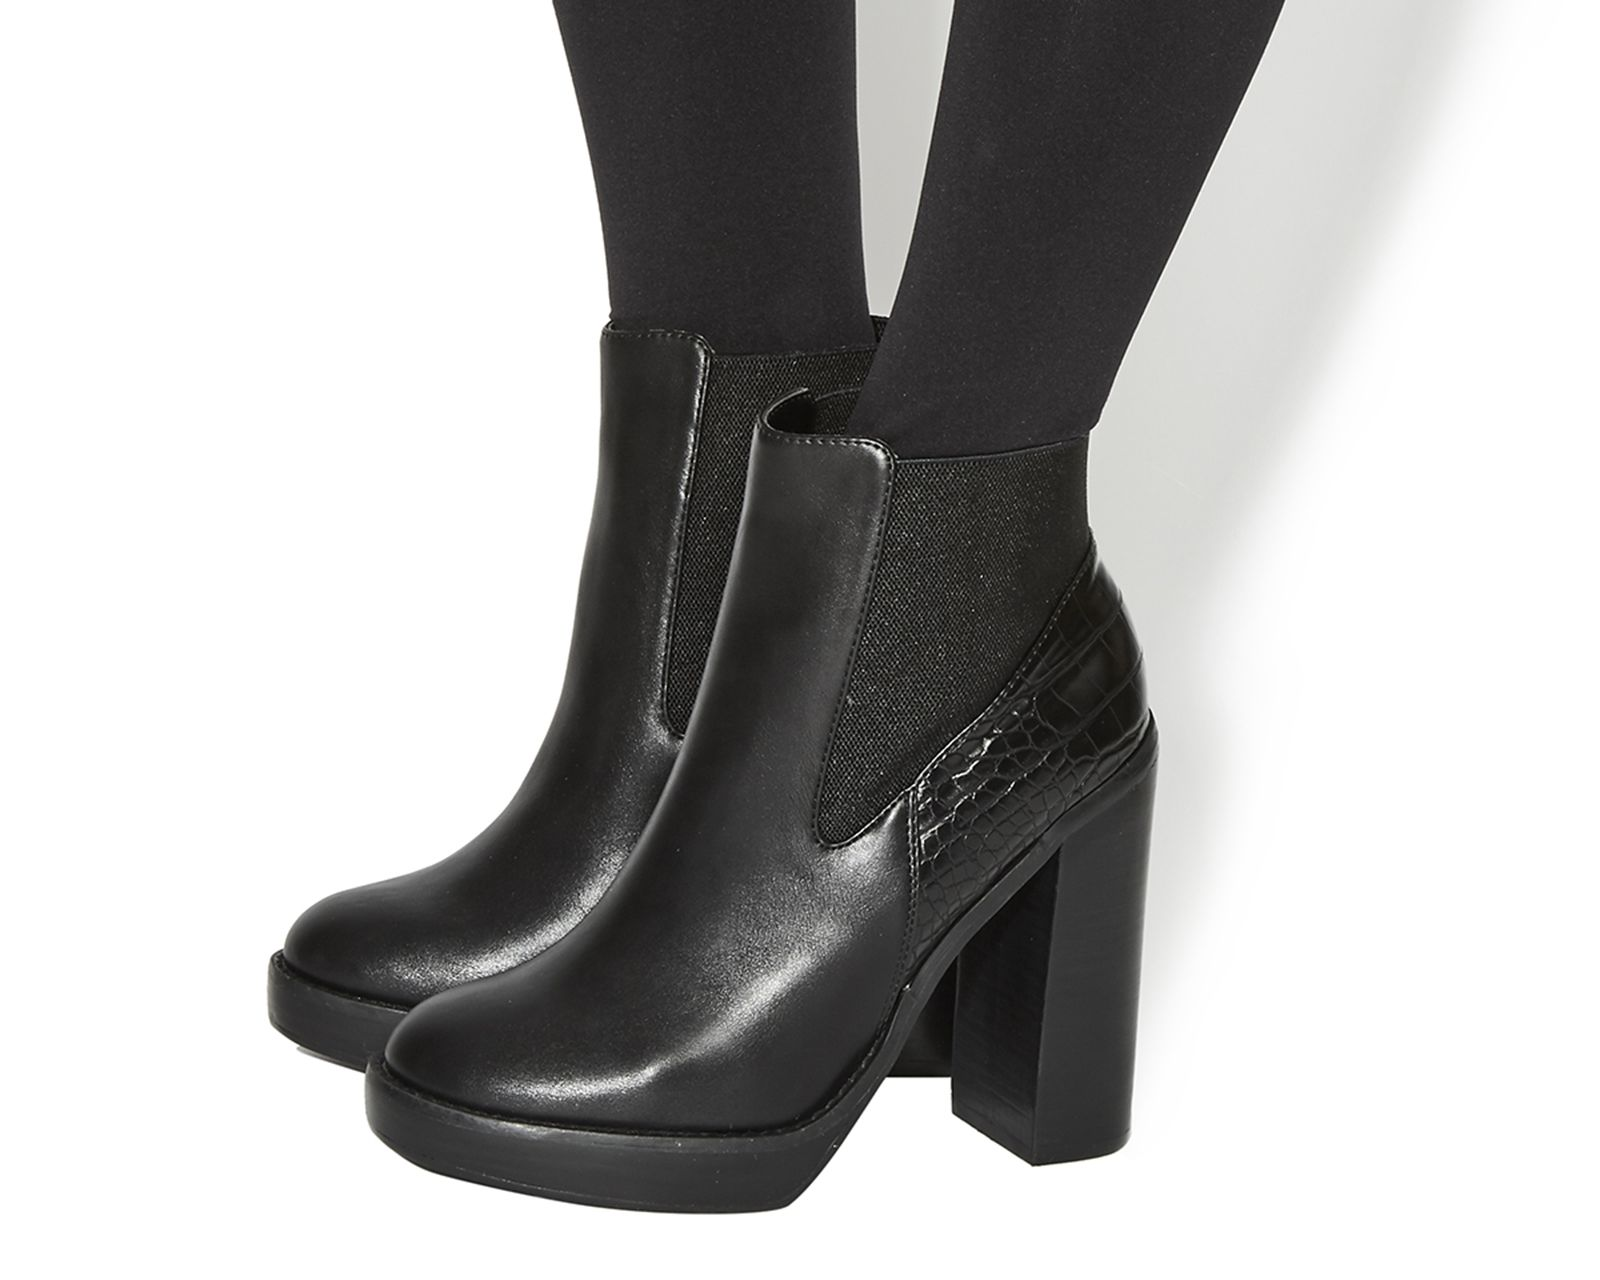 Buy Black Box Office Imogen High Cut Chelsea Boots from OFFICE.co.uk.